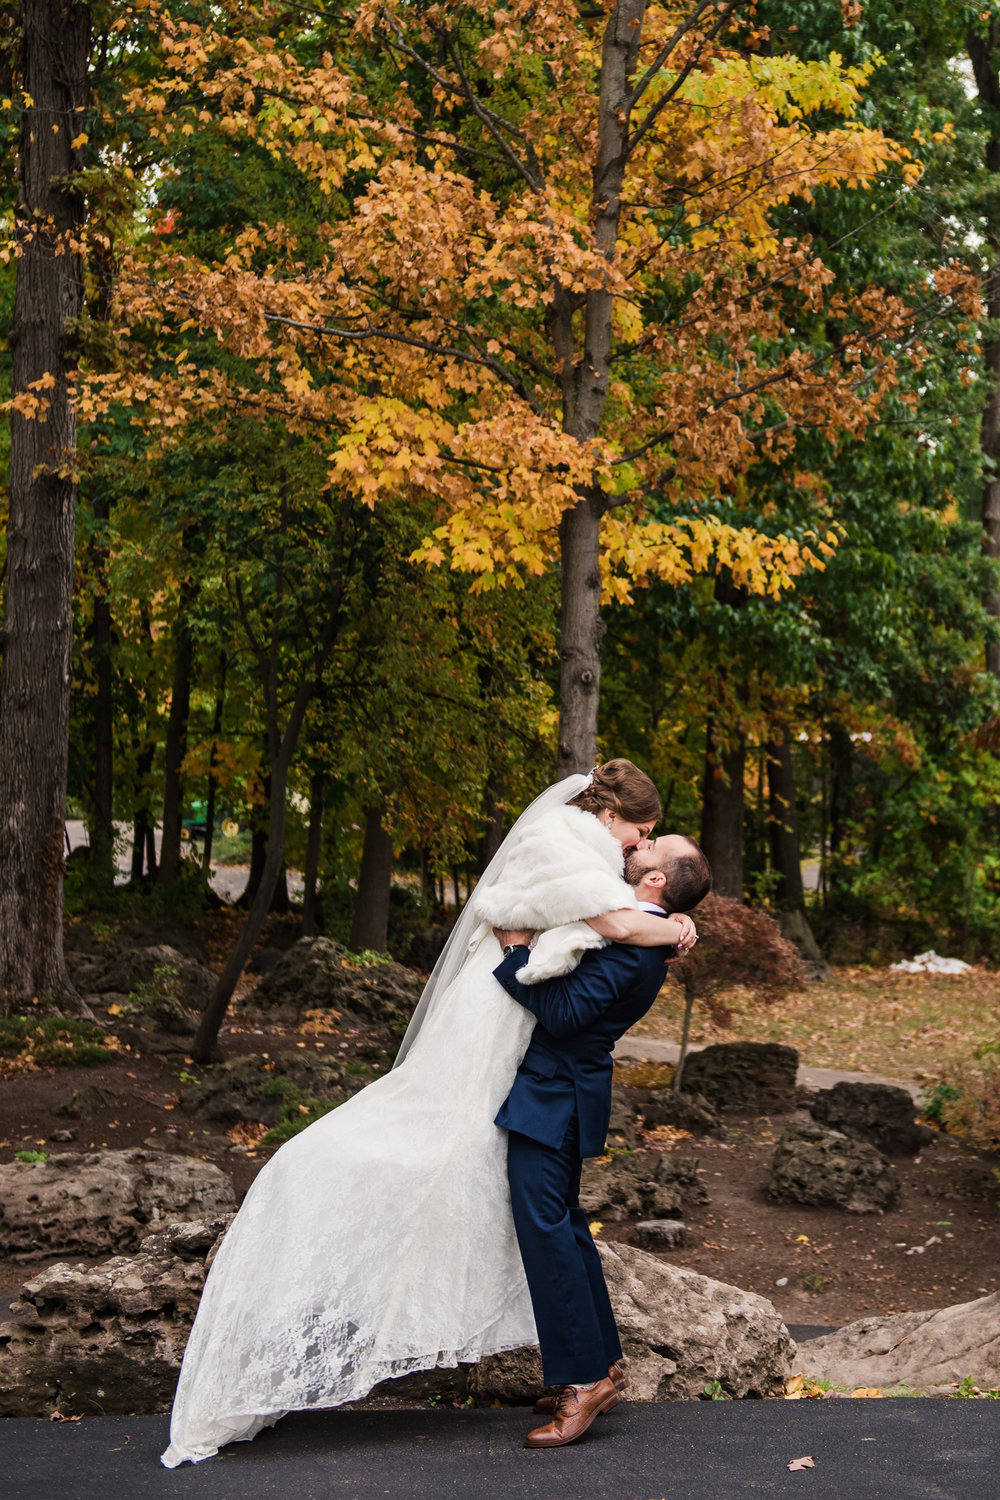 Shadow_Lake_Rochester_Wedding_JILL_STUDIO_Rochester_NY_Photographer_DSC_6109.jpg